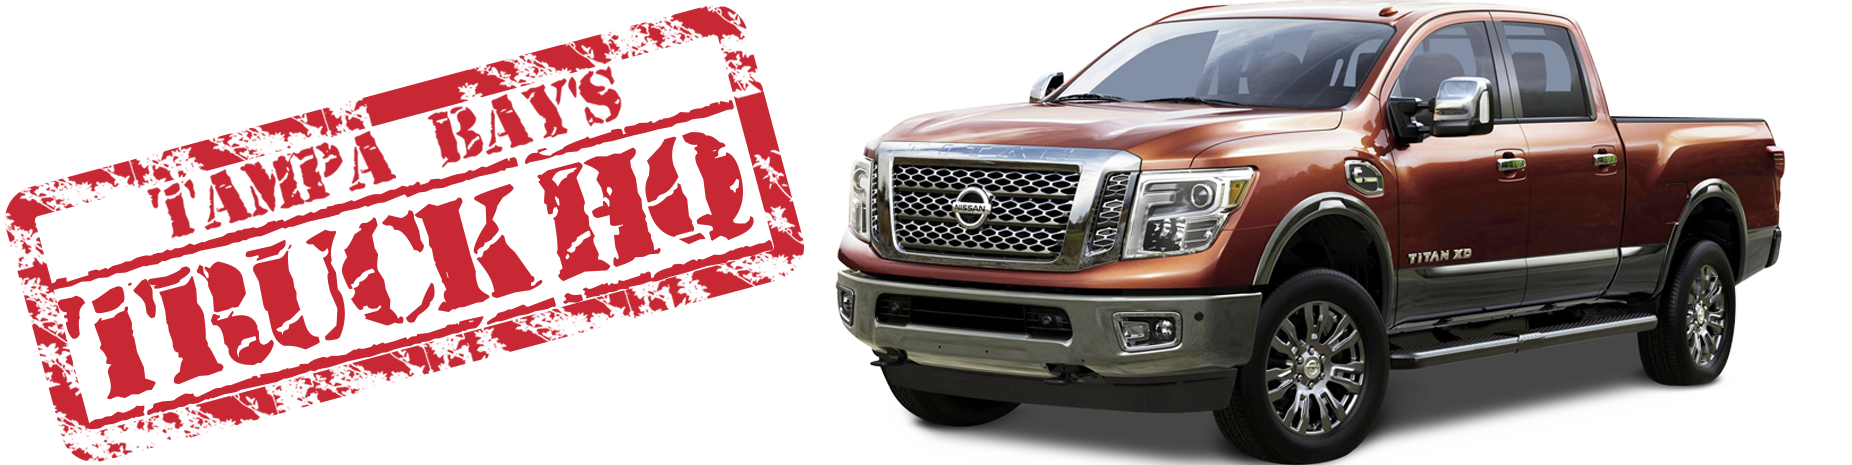 Nissan Trucks | Nissan Titan and Frontier in Tampa FL